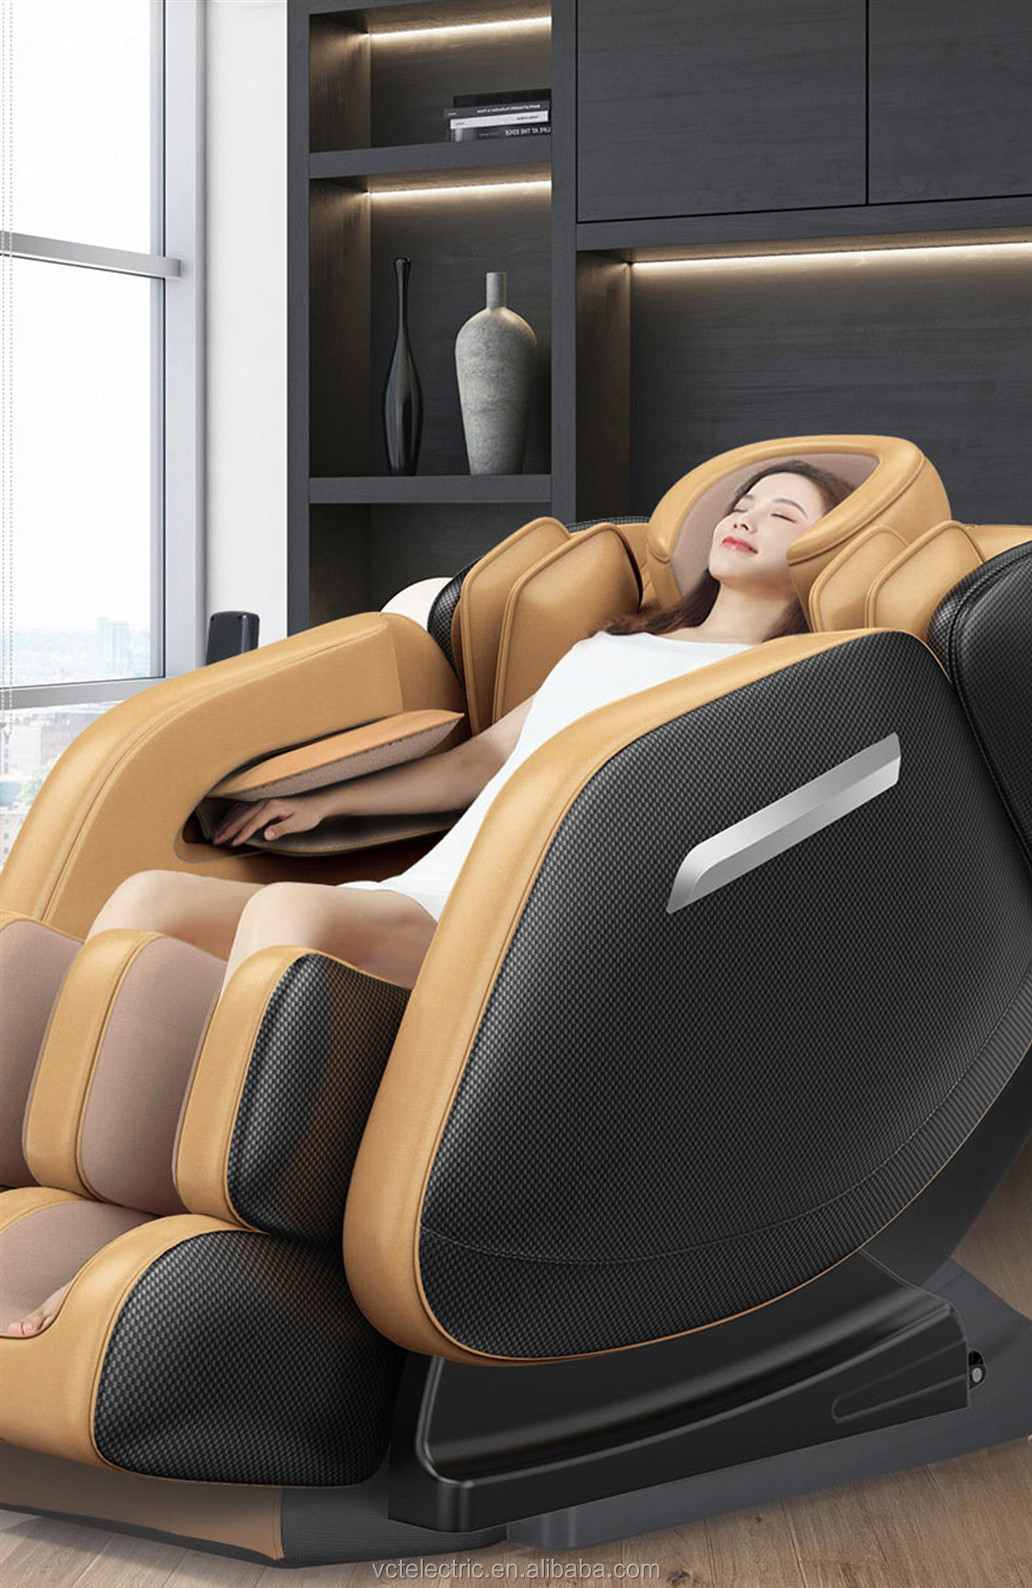 2019 Massager Chair Zero Gravity Capsule Full Body Cheap massage chair with Head Massage